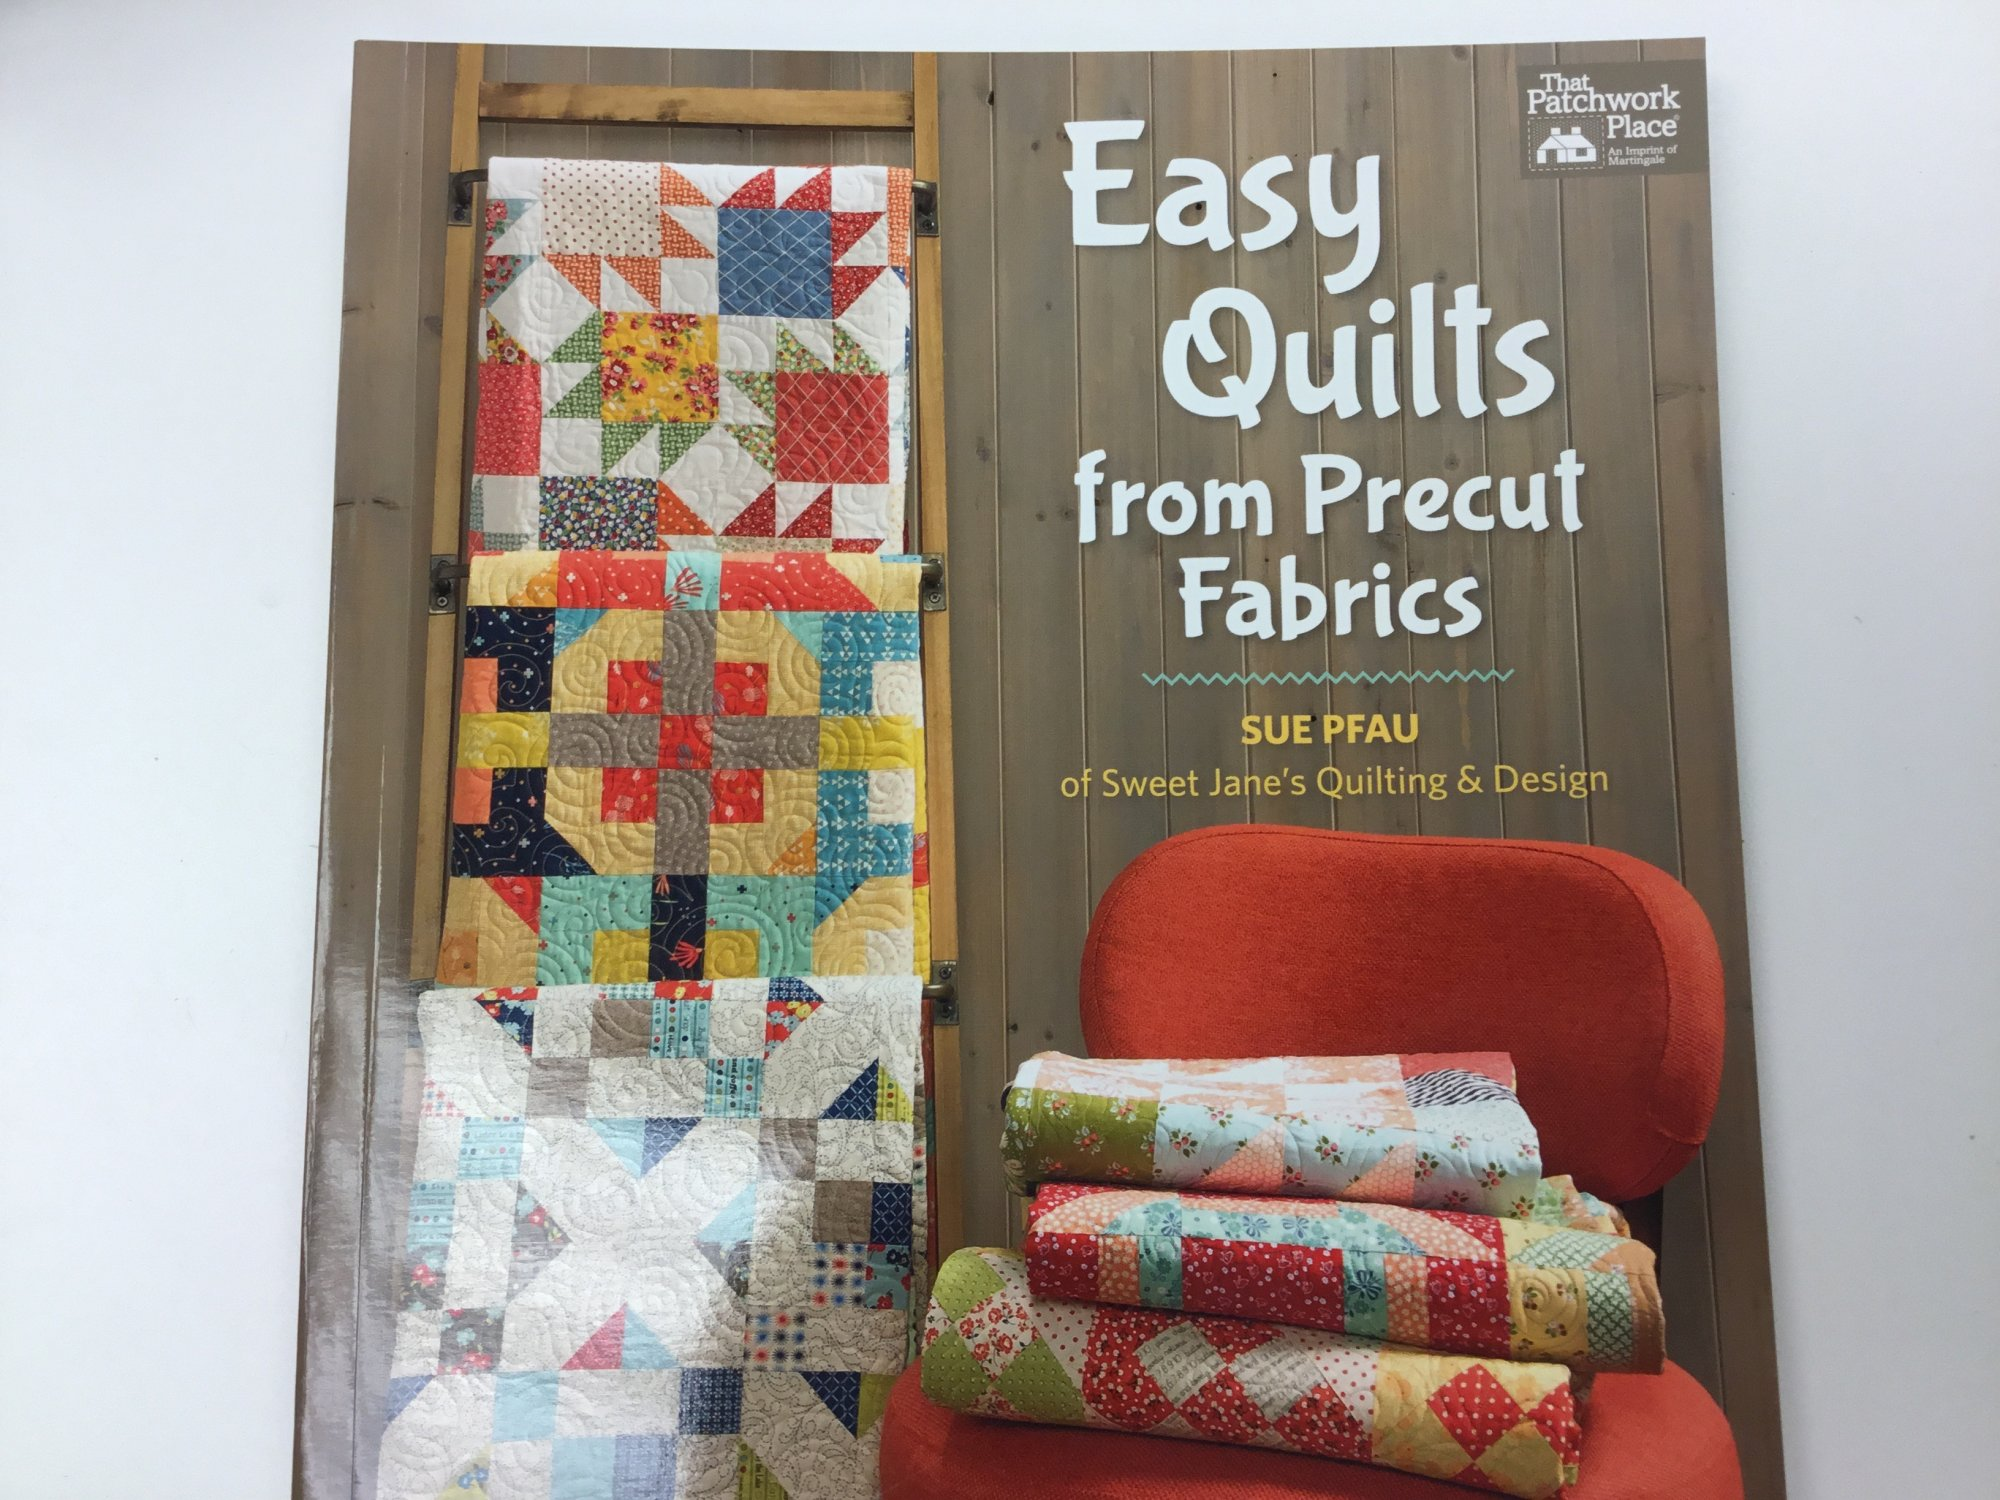 EASY QUILTS FROM PRECUT FABRICS BOOK by Sue Pfau